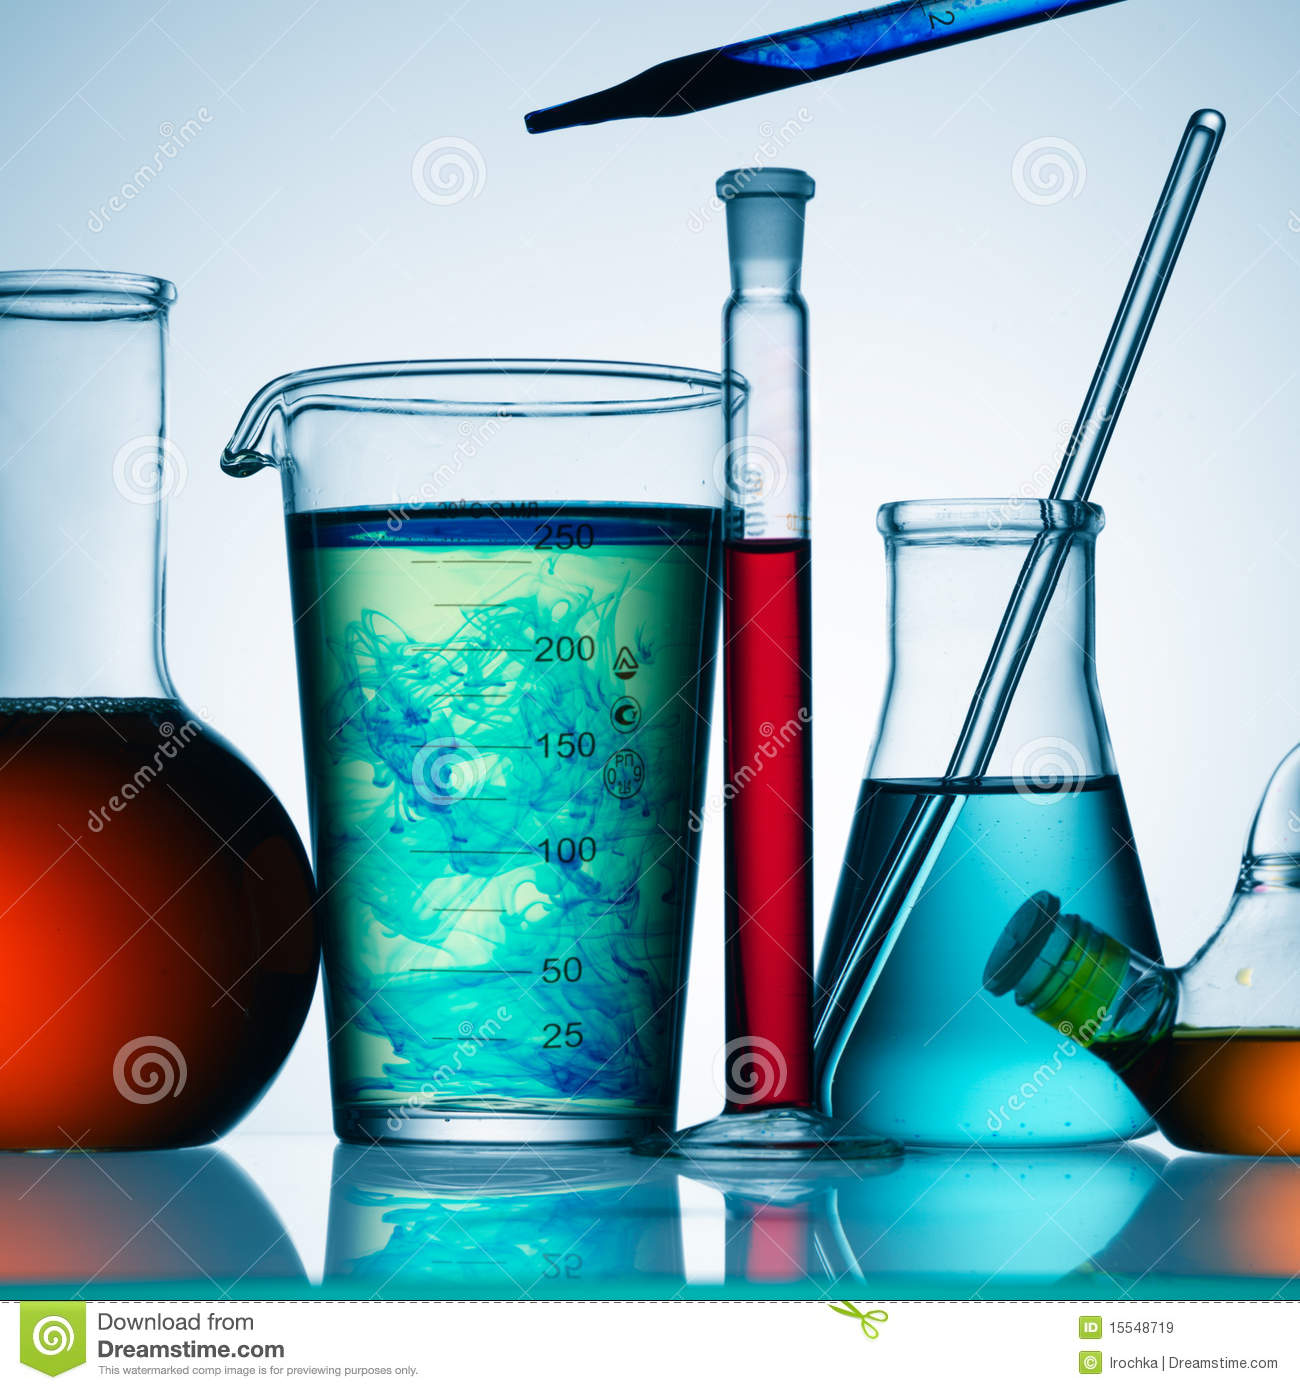 Chemicals in glass